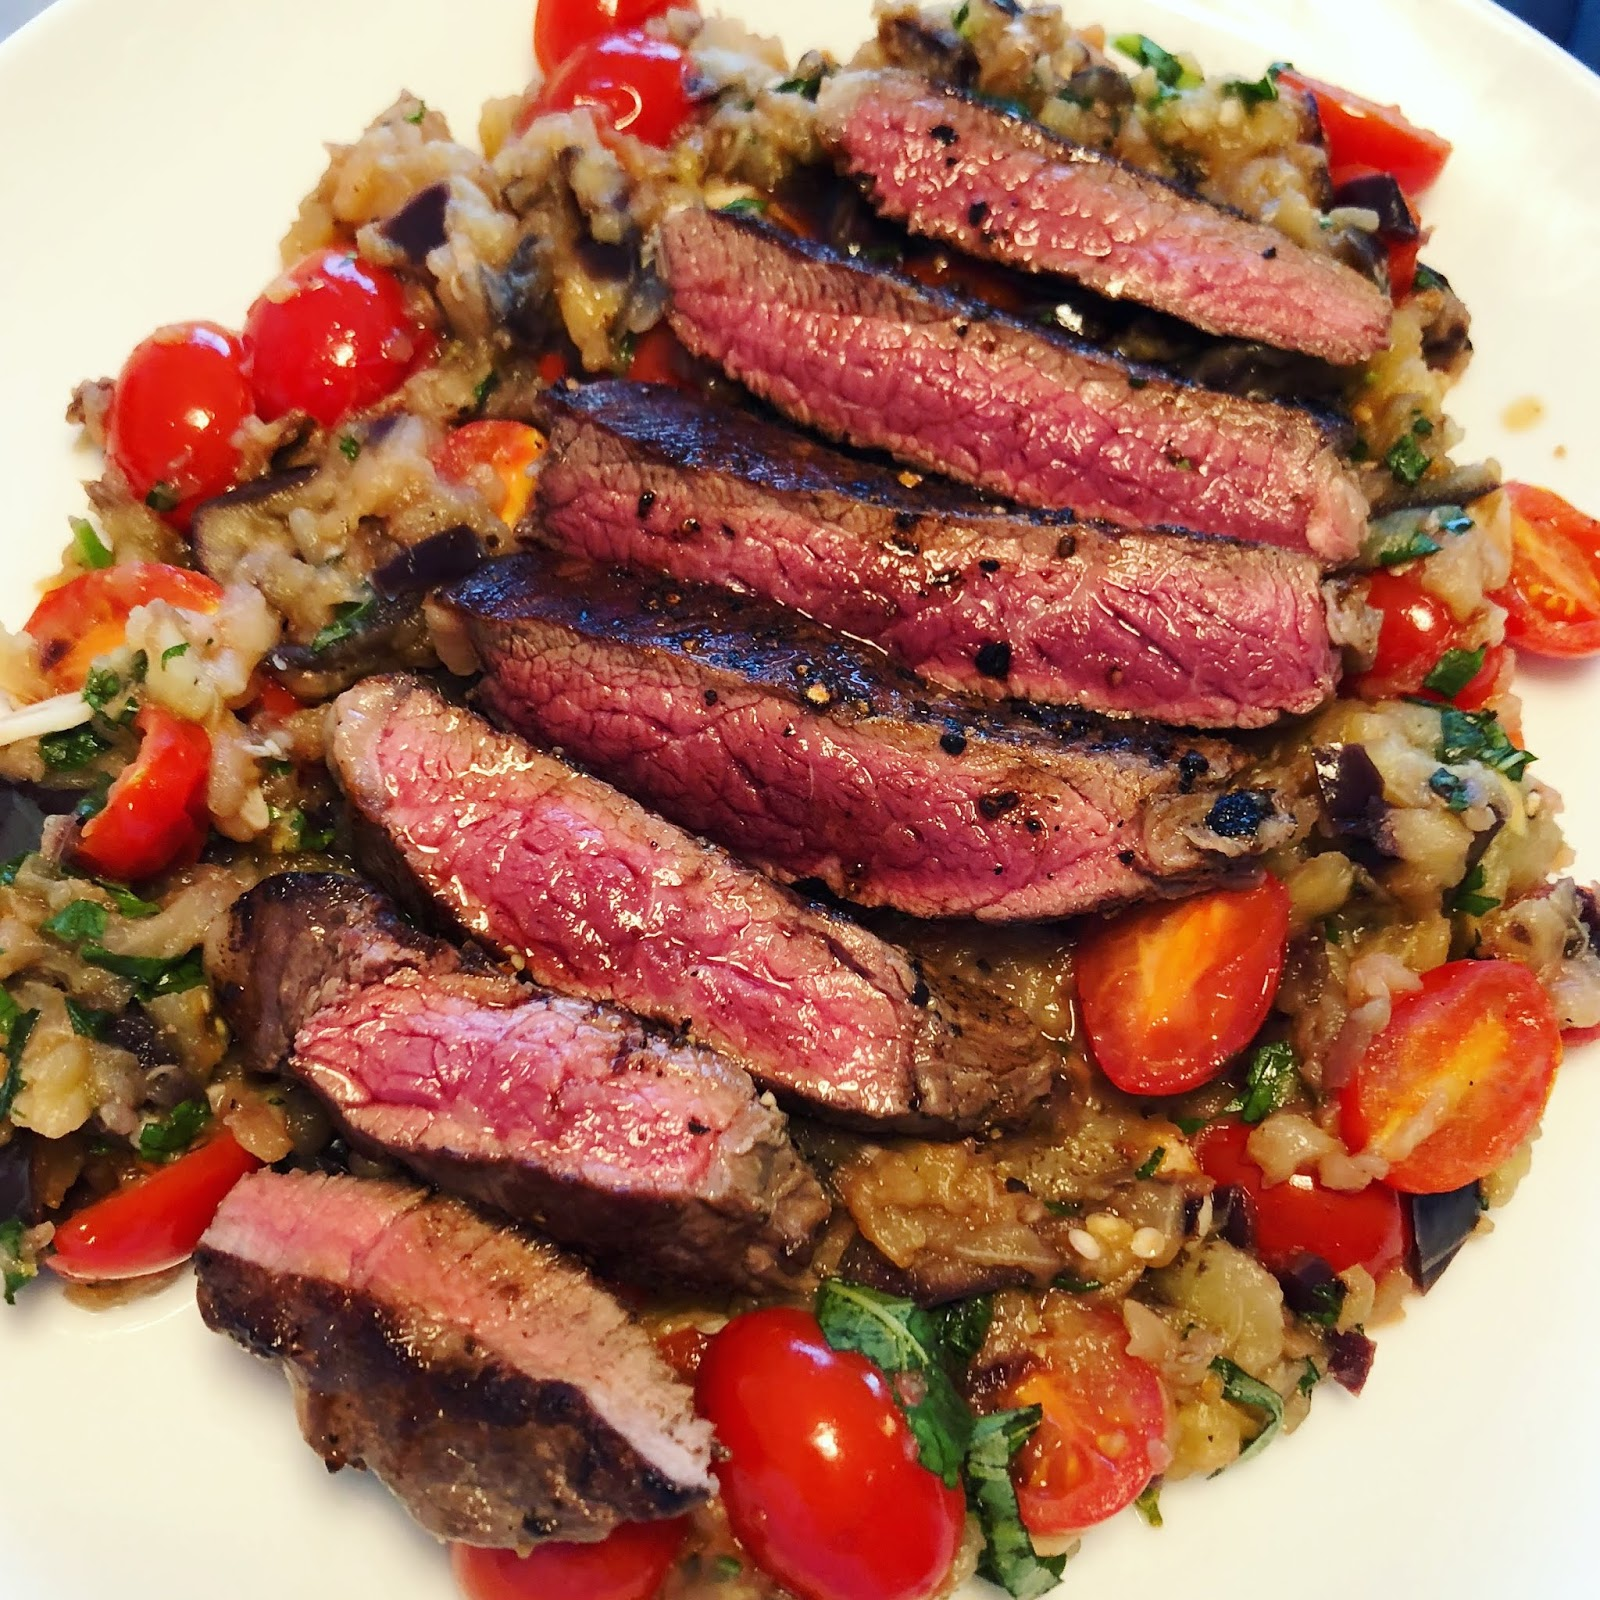 Sizzling Steak with Aubergine and Cherry Tomatoes